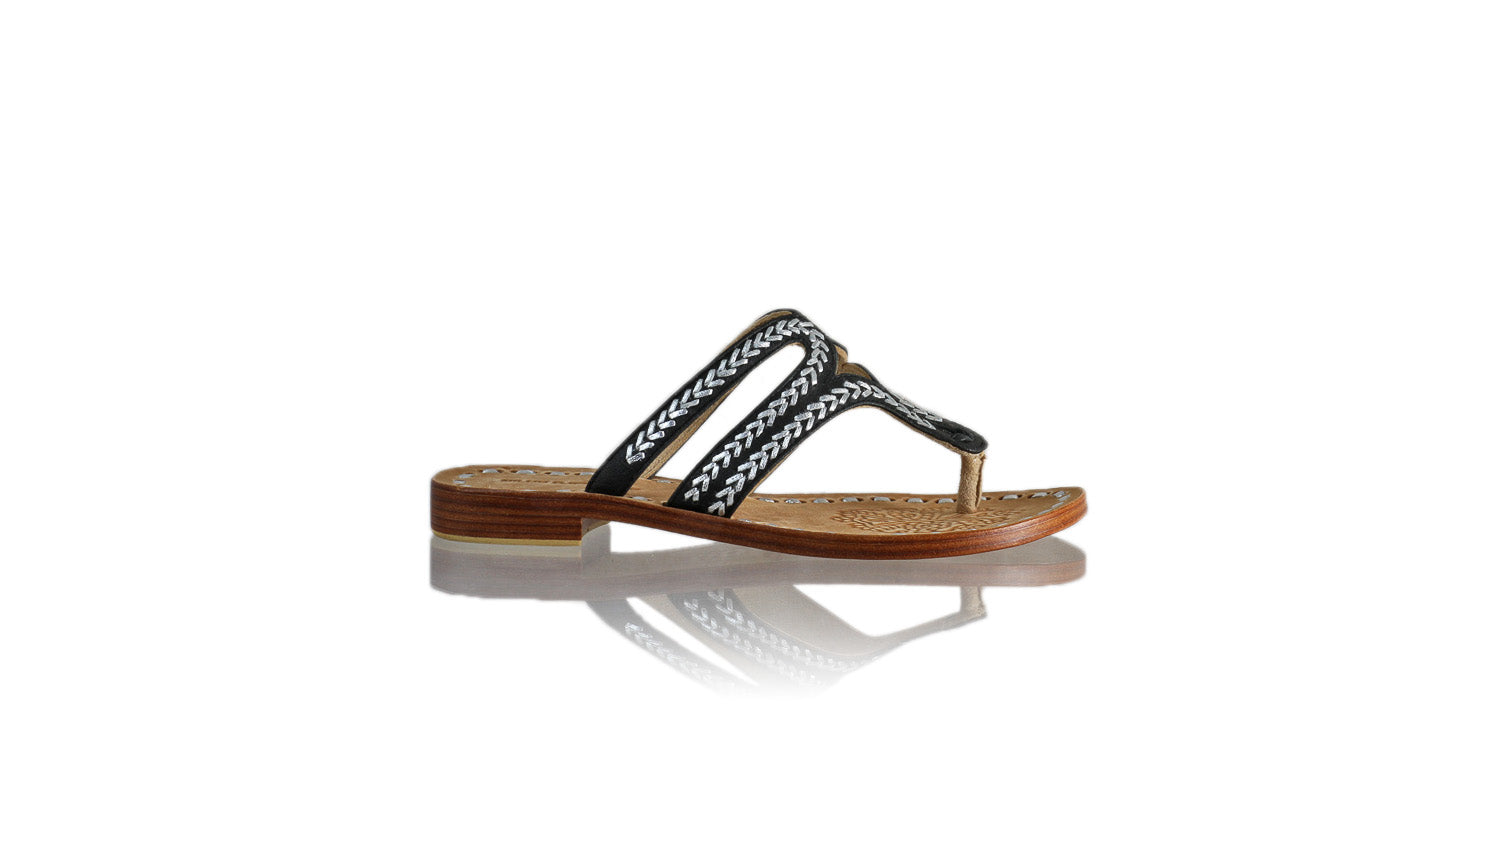 Leather-shoes-Arrah 20mm Flat - Black & Silver-sandals higheel-NILUH DJELANTIK-NILUH DJELANTIK